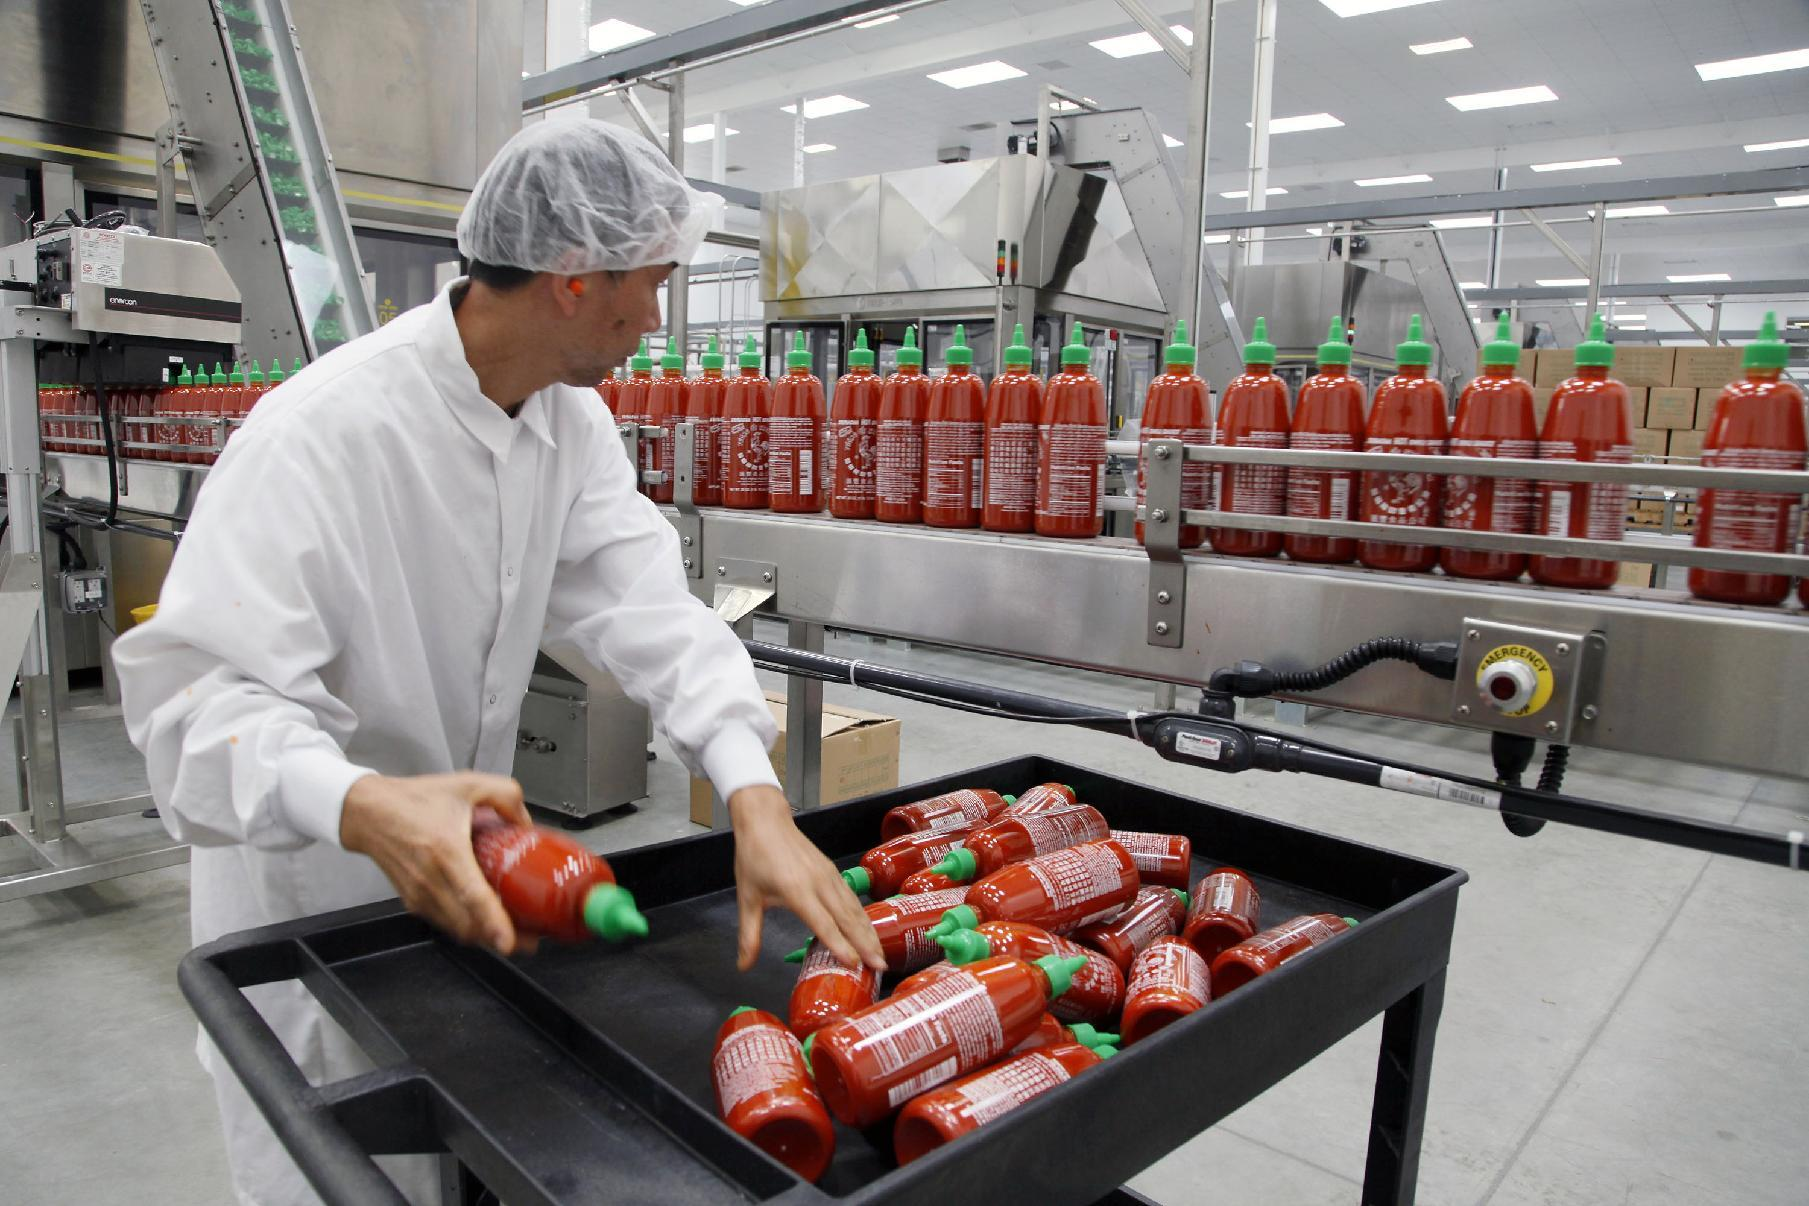 Sriracha chili sauce is produced at the Huy Fong Foods factory in Irwindale, Calif., on Tuesday, Oct 29, 2013. The maker of Sriracha hot sauce is under fire for allegedly fouling the air around its Southern California production site. The city of Irwindale filed a lawsuit in Los Angeles Superior Court Monday asking a judge to stop production at the Huy Fong Foods factory, claiming the chili odor emanating from the facility is a public nuisance. (AP Photo/Nick Ut)